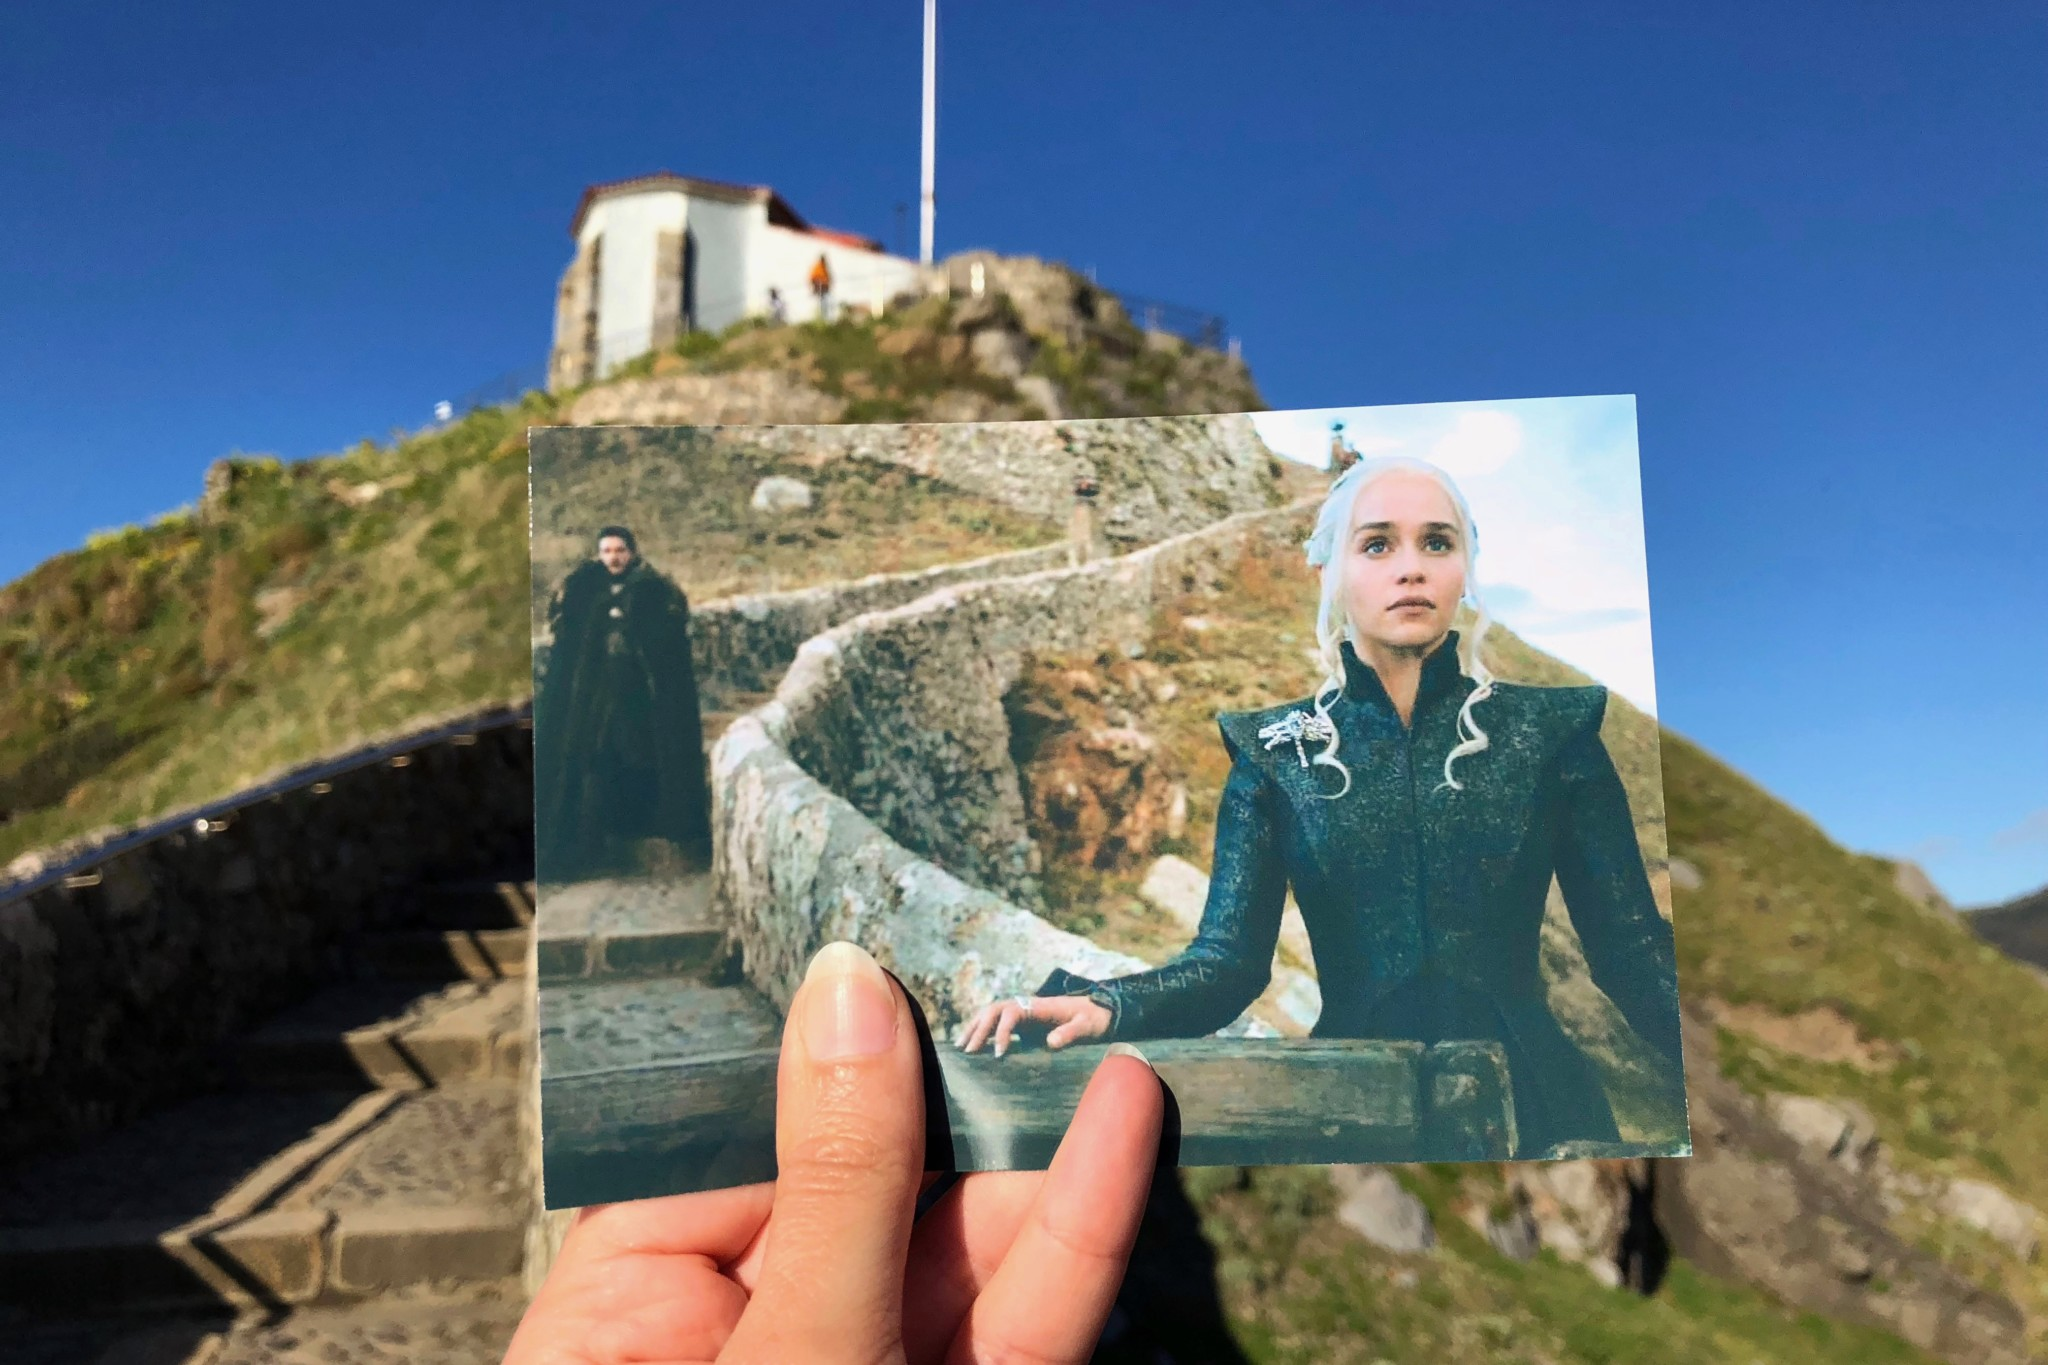 Game of Thrones Drehort von Andrea David von Filmtourismus